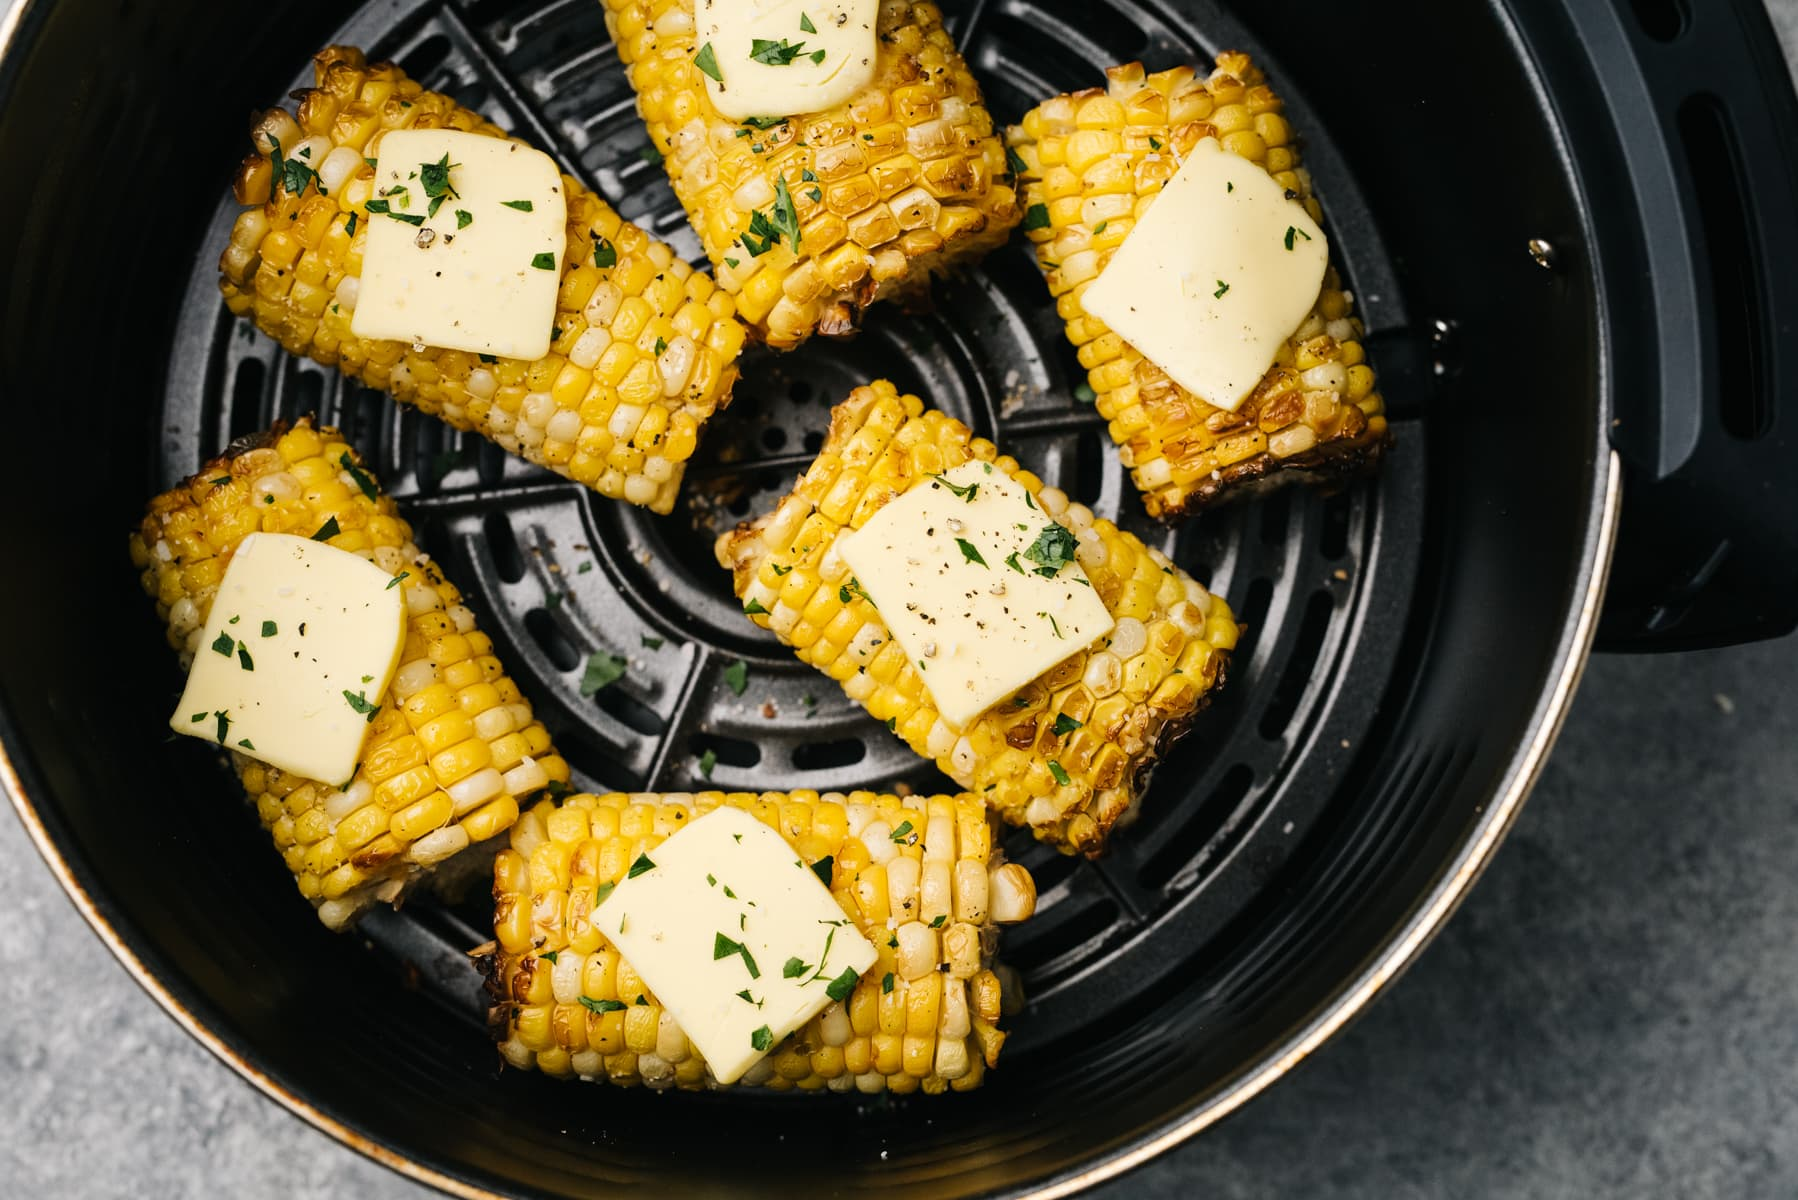 Air fryer corn on the cob in the basket of an air fryer, topped with butter and chopped basil.